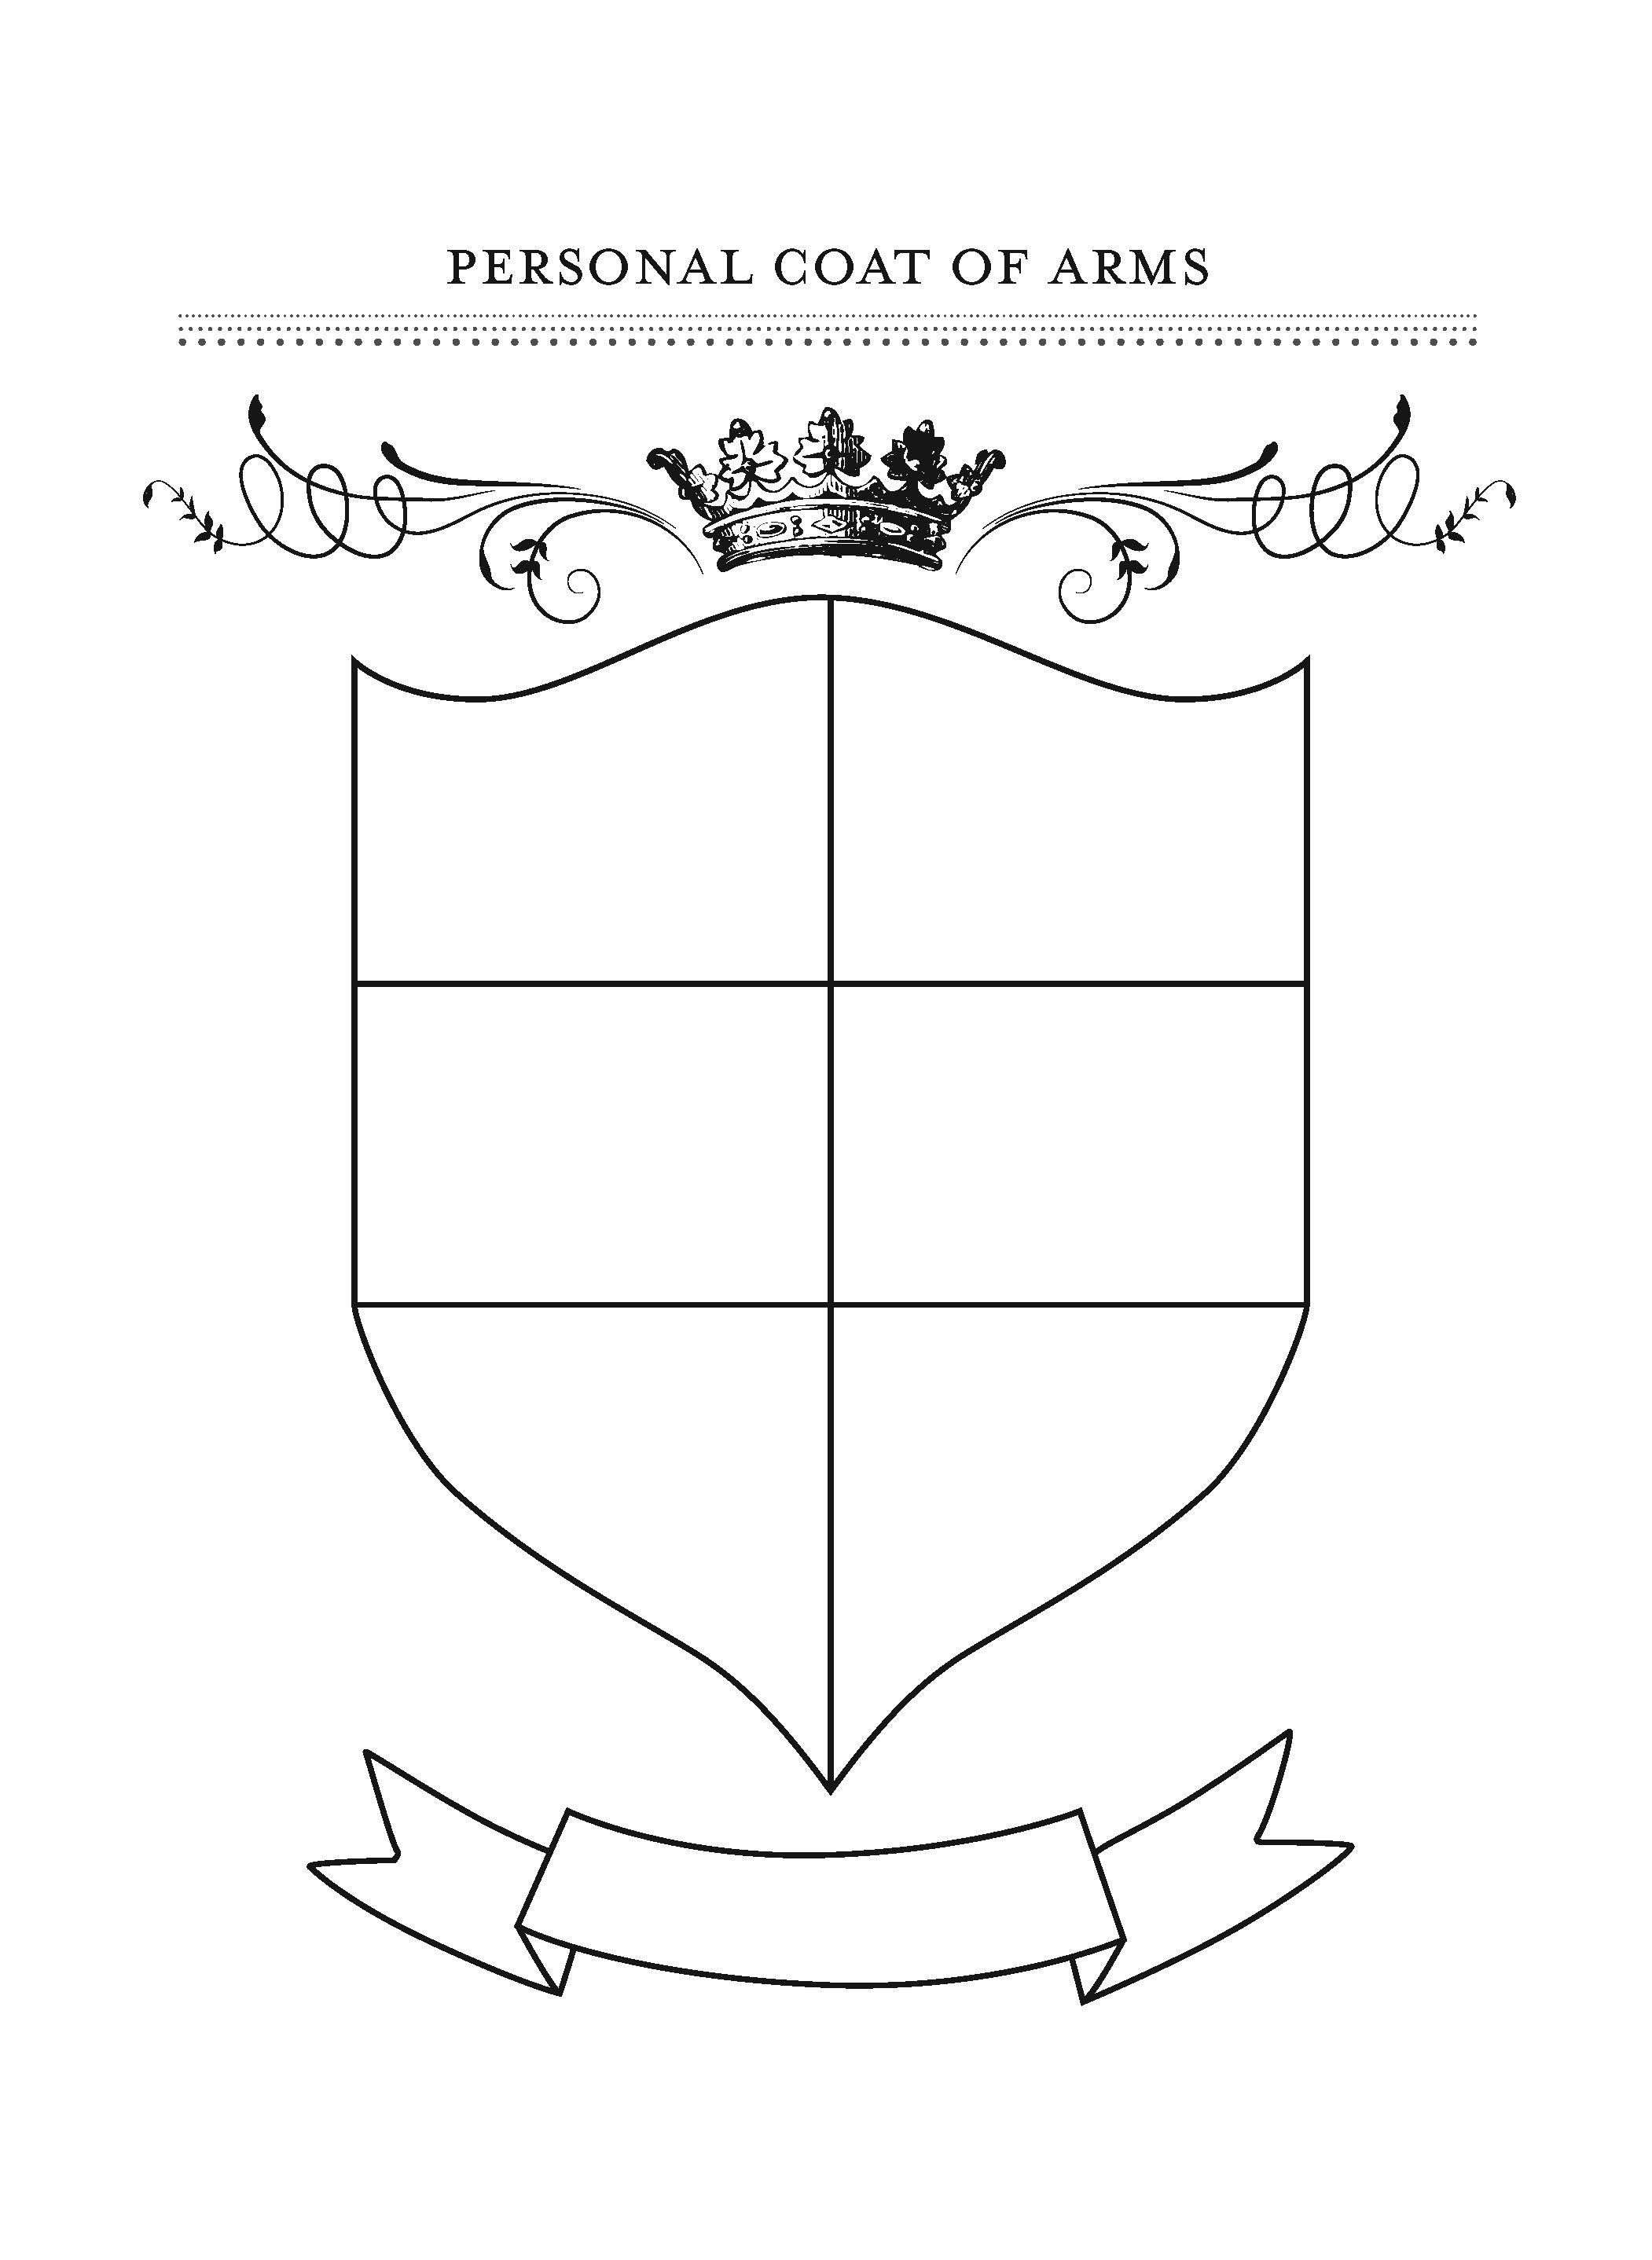 Honor Your Family With Fun Gratitude Crafts Slow Family Gratitude Crafts Coat Of Arms Art Therapy Activities